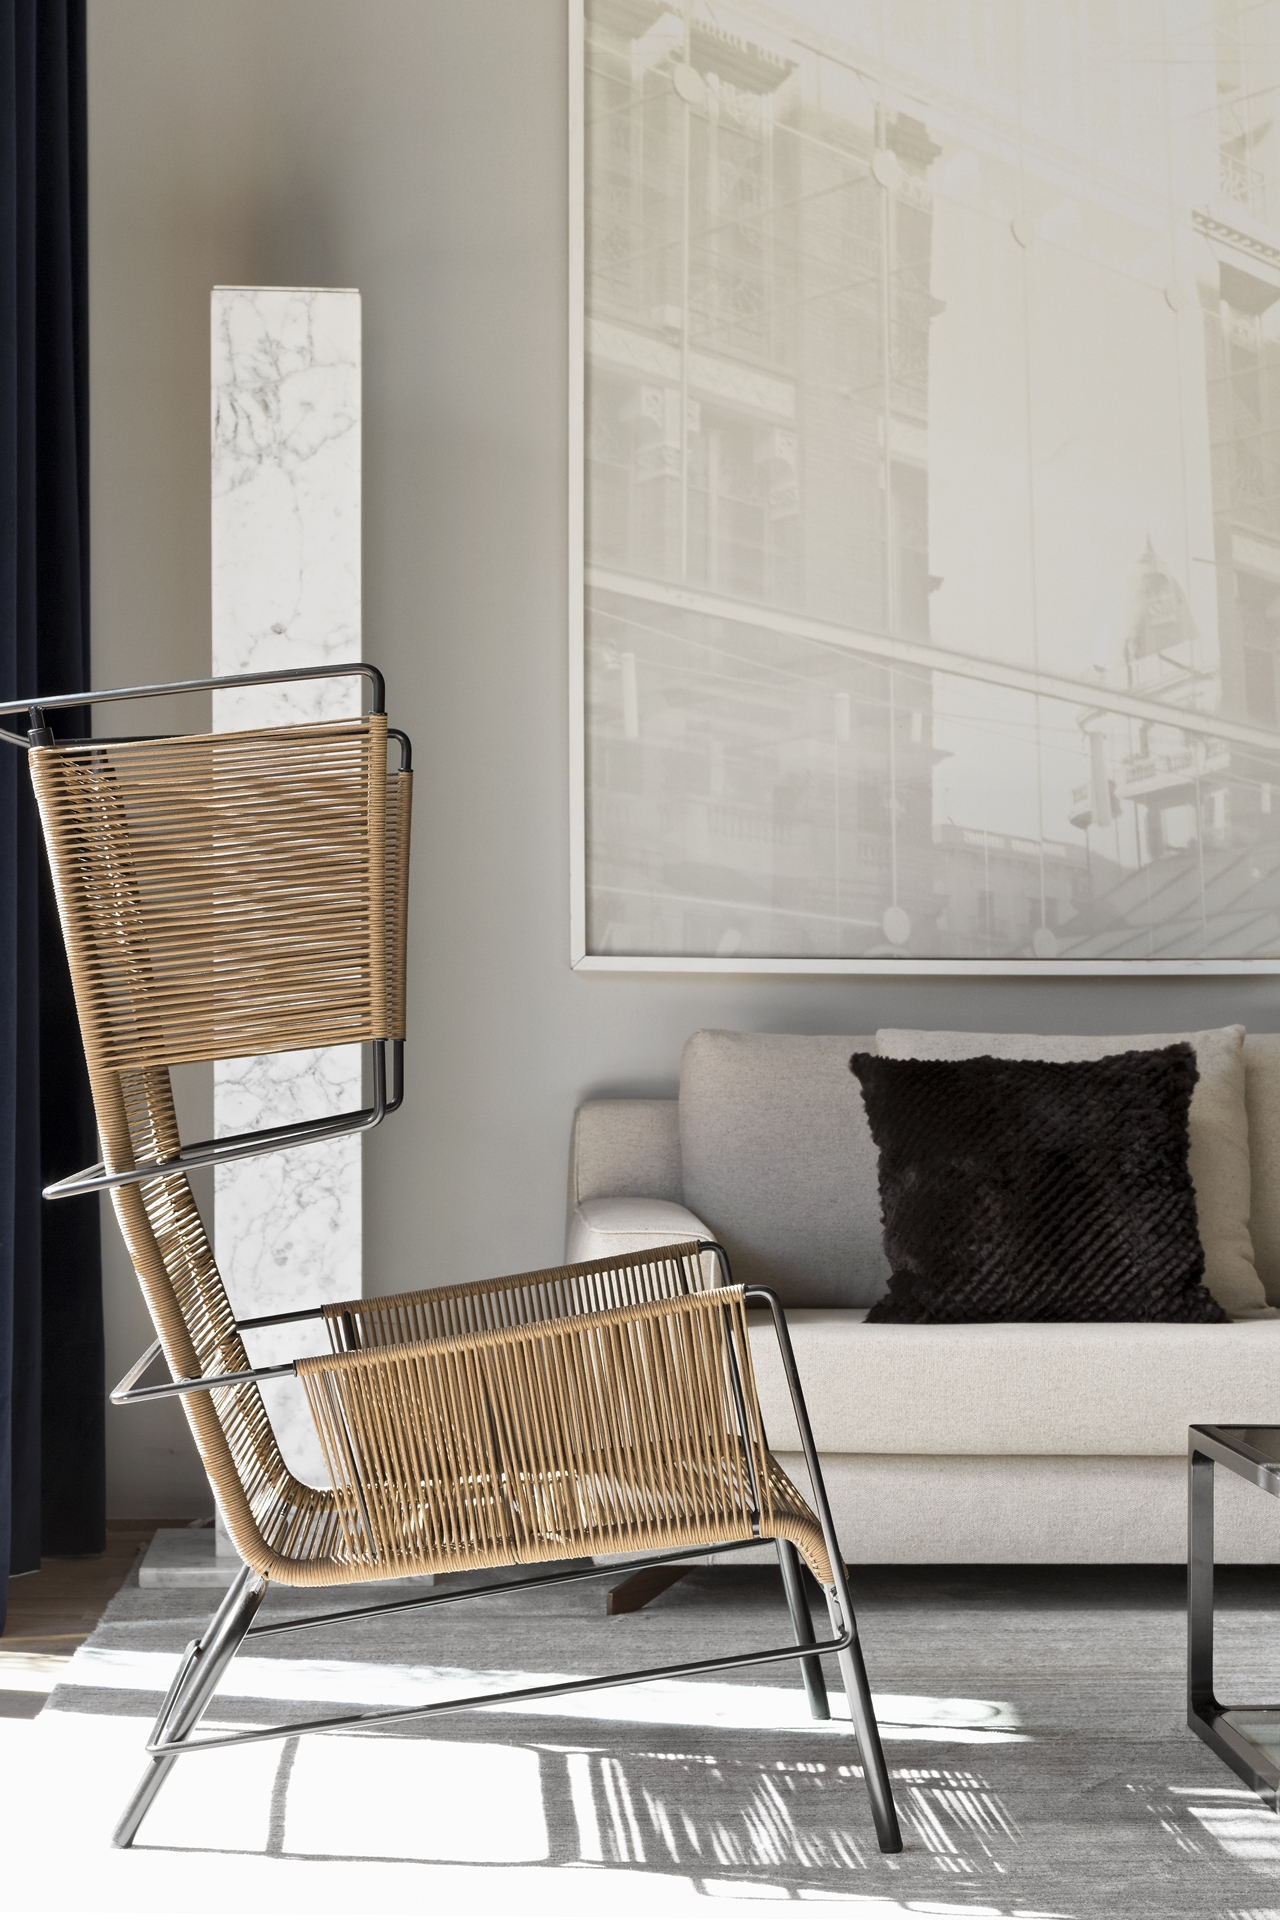 Industrial design chair in Itacolomi 445 apartment by Diego Revollo